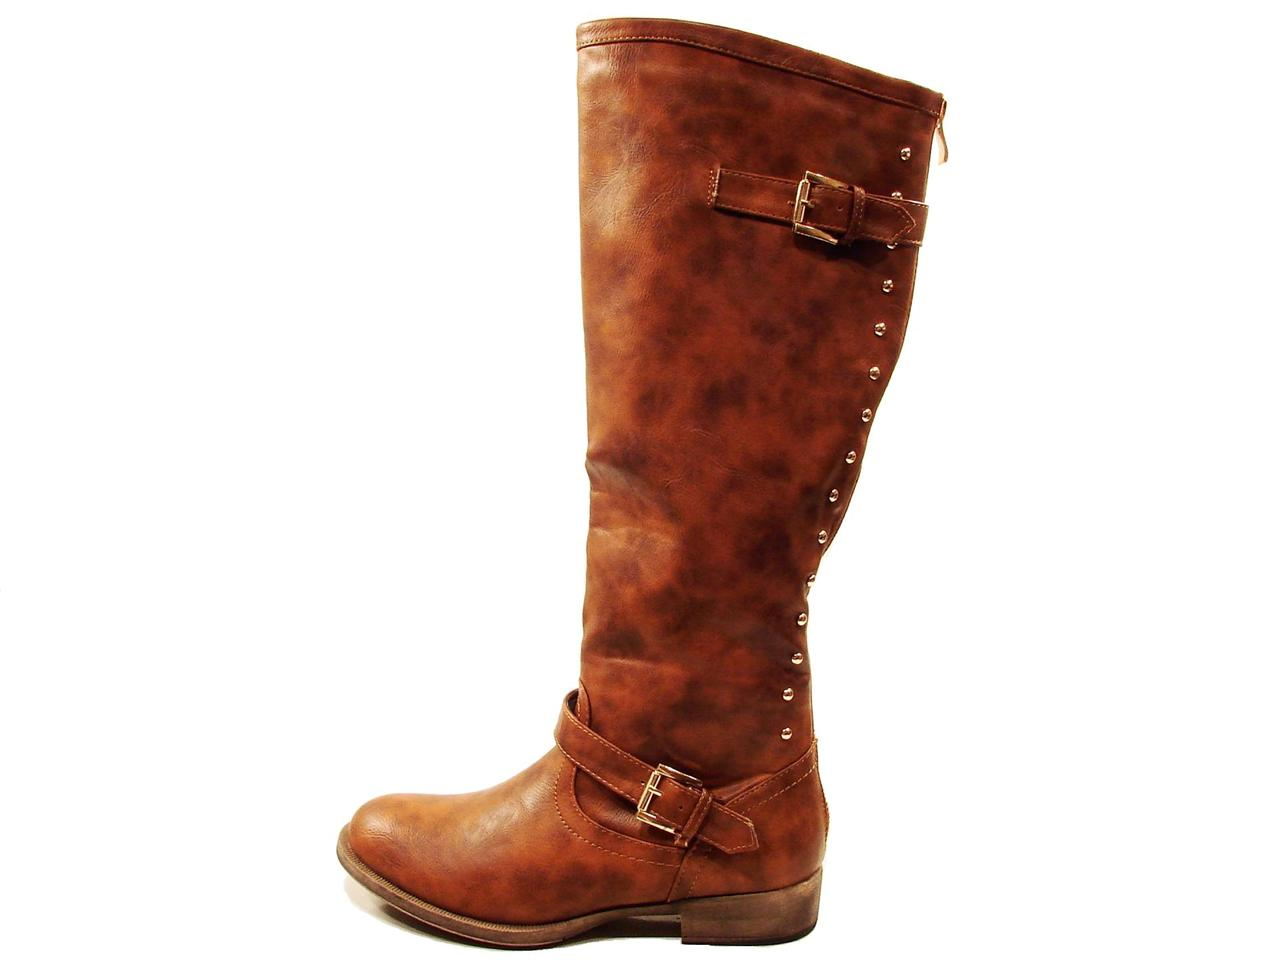 Unique Riding Boots For Women Enzo Angiolini 39Saylem39 Riding Boot Womens